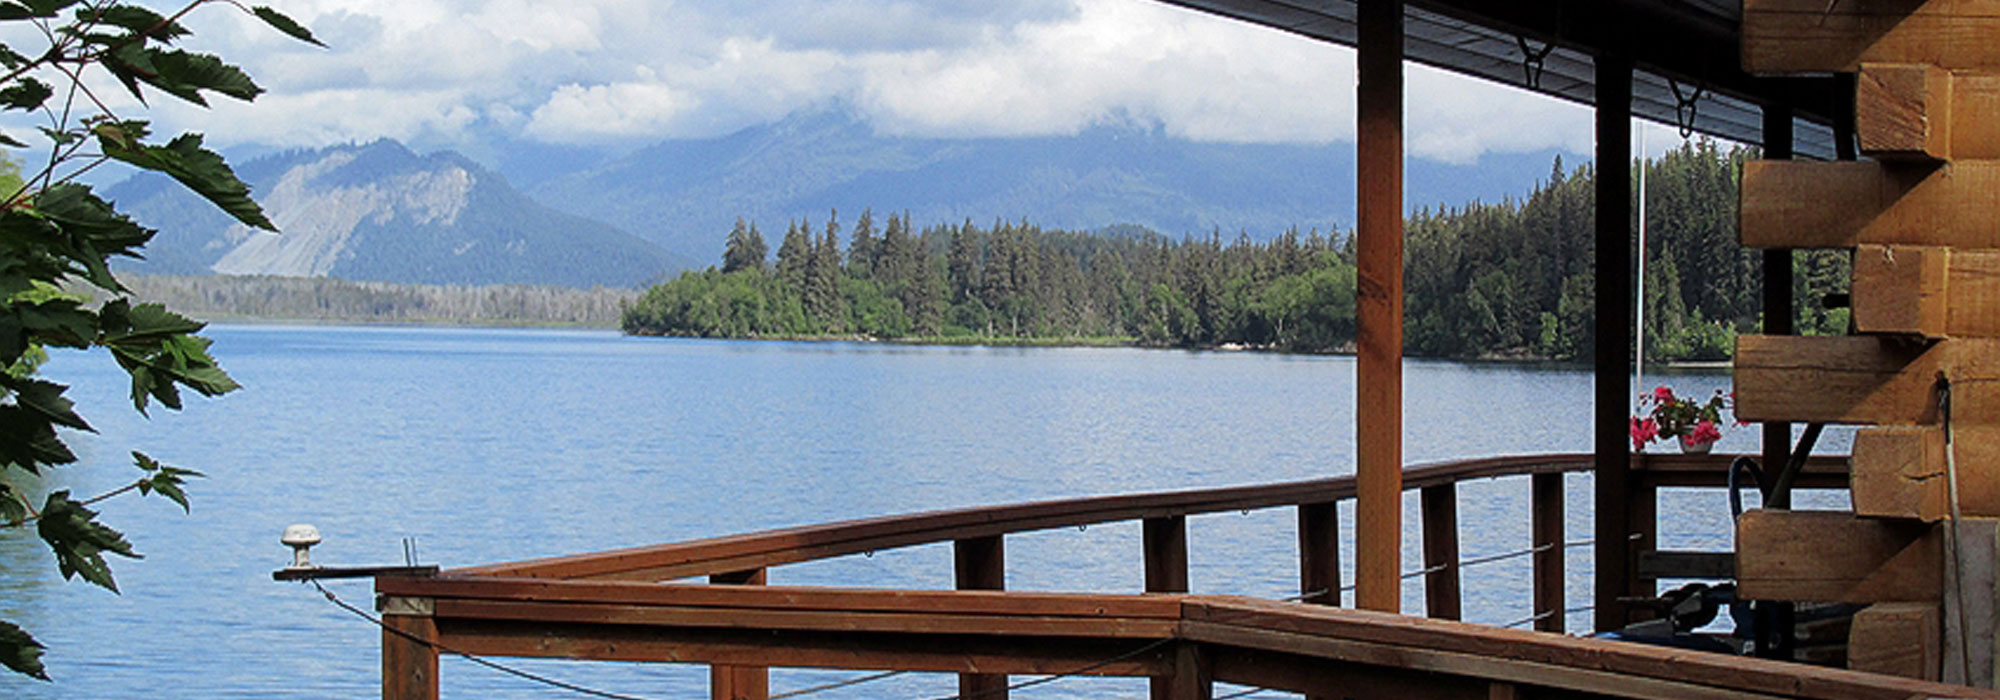 Chilkat Lake -Loon Island Waterfront Estate